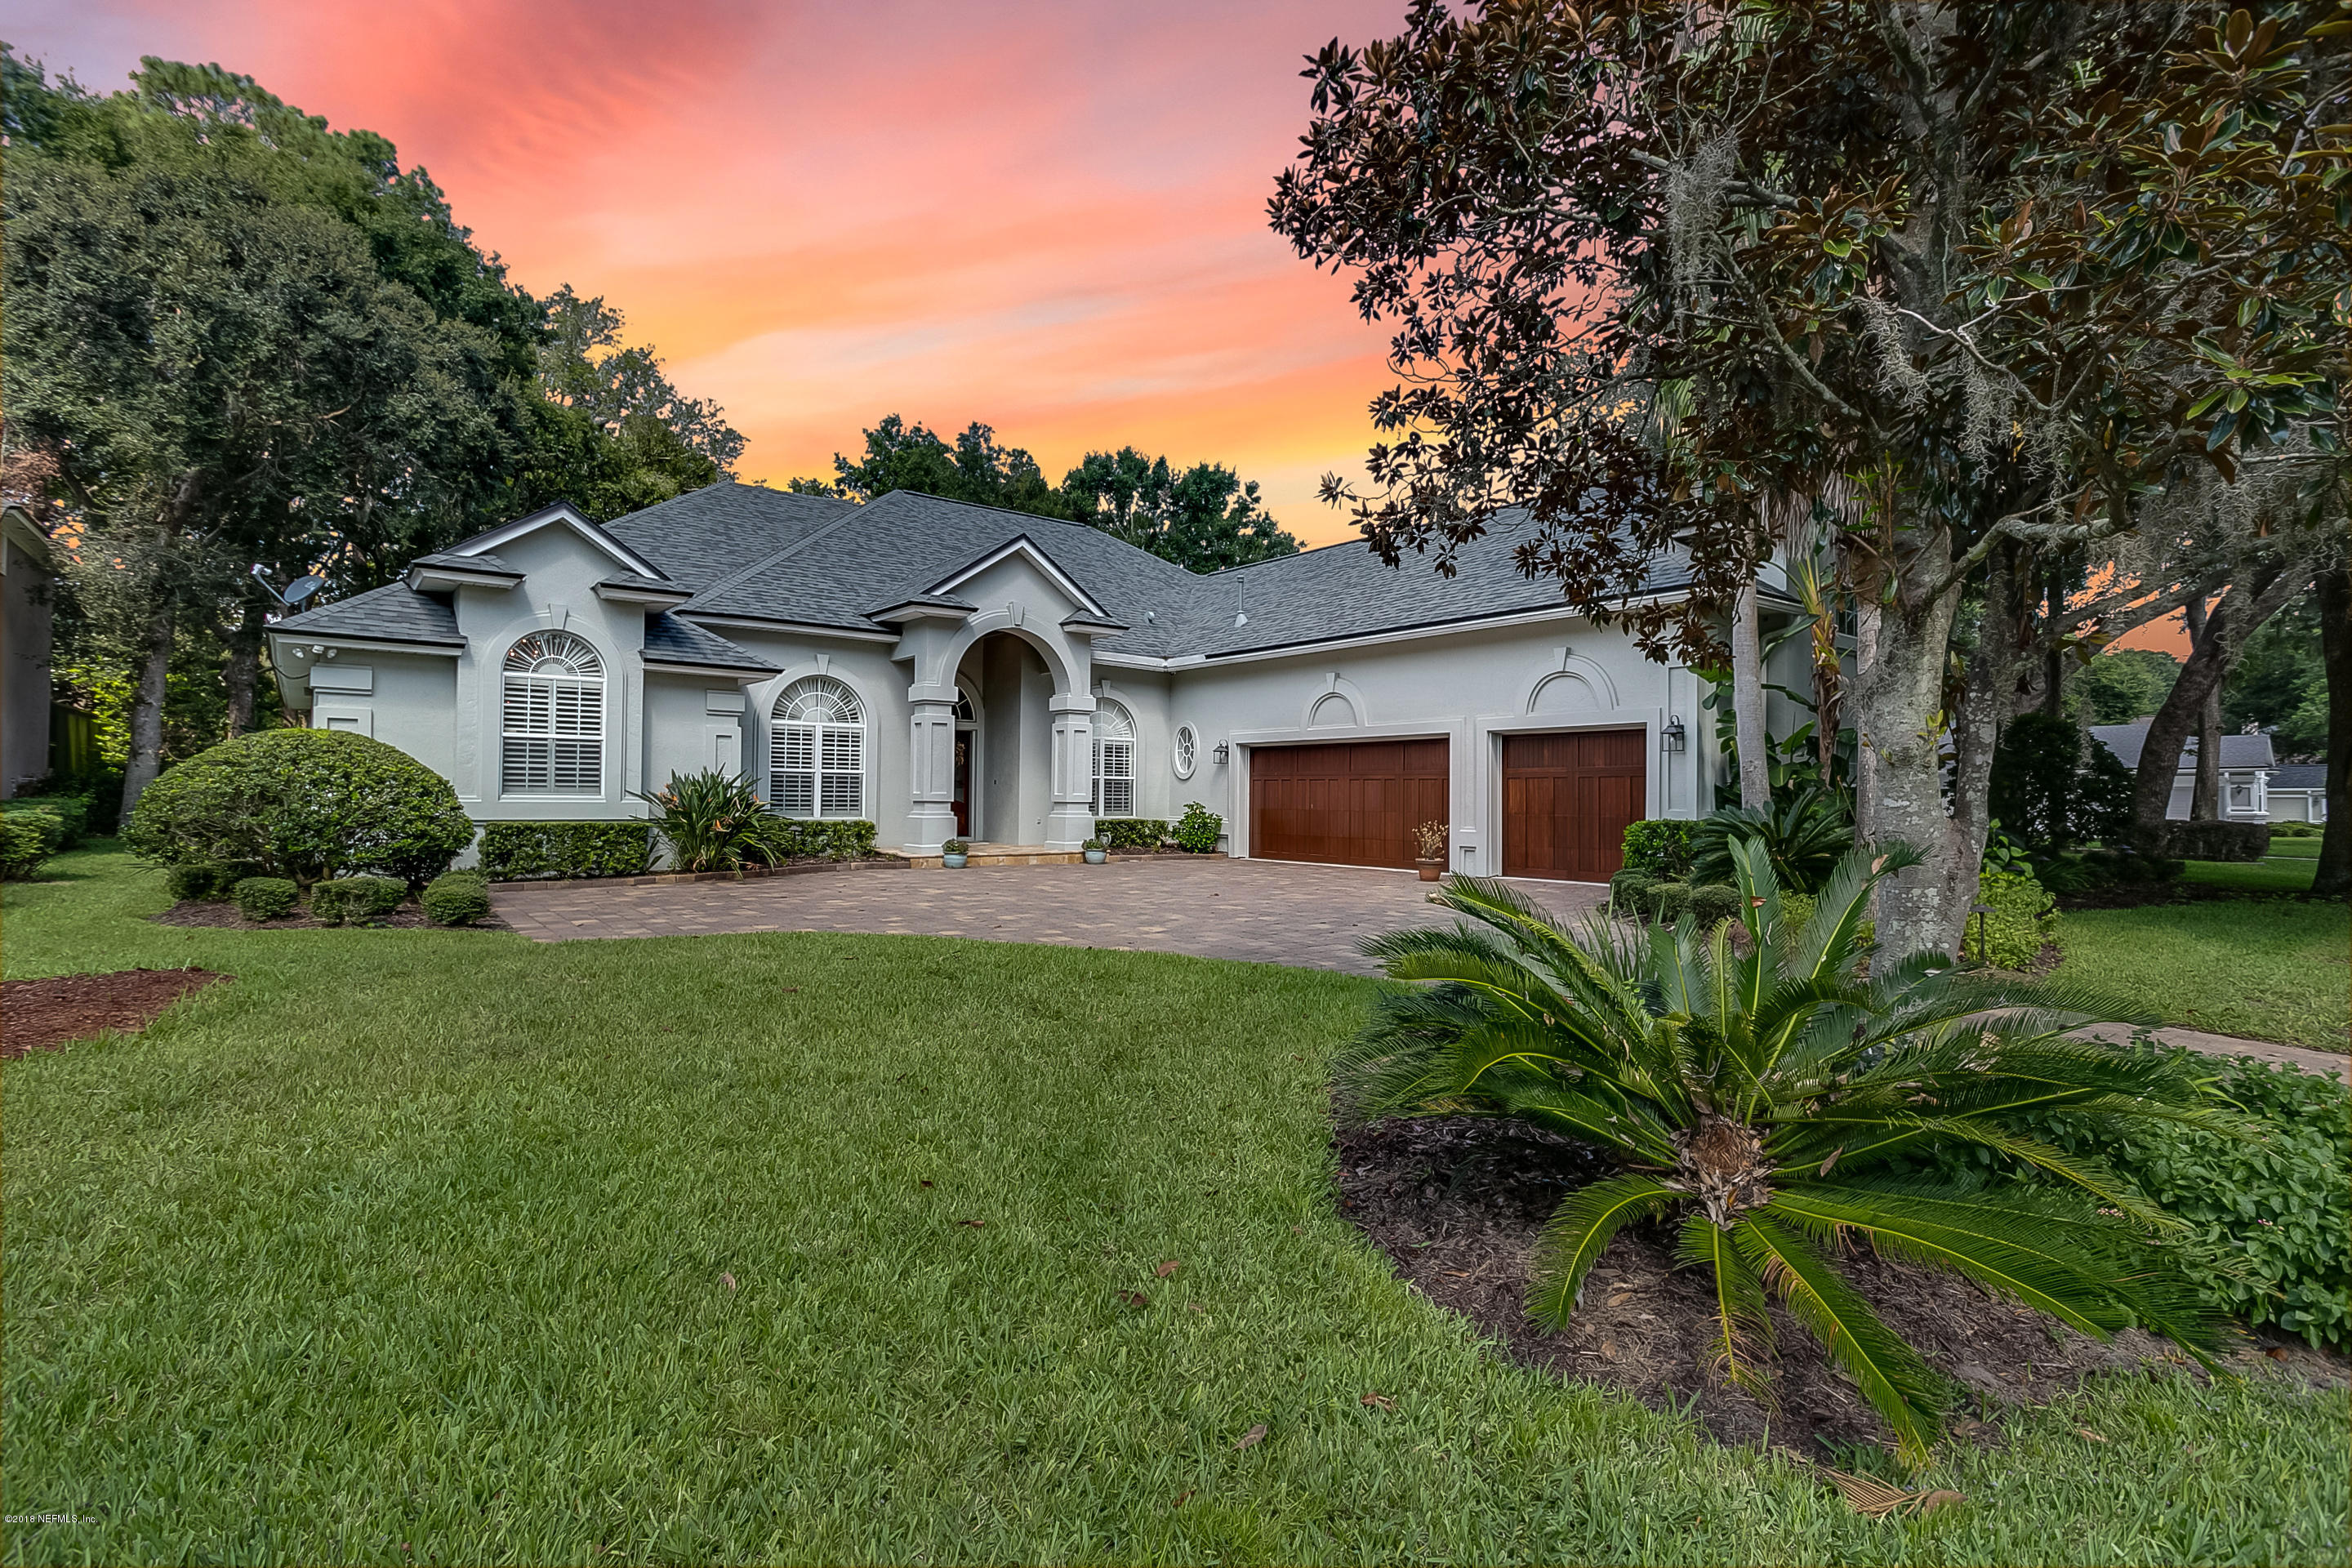 13747 BROMLEY POINT, JACKSONVILLE, FLORIDA 32225, 5 Bedrooms Bedrooms, ,4 BathroomsBathrooms,Residential - single family,For sale,BROMLEY POINT,958606